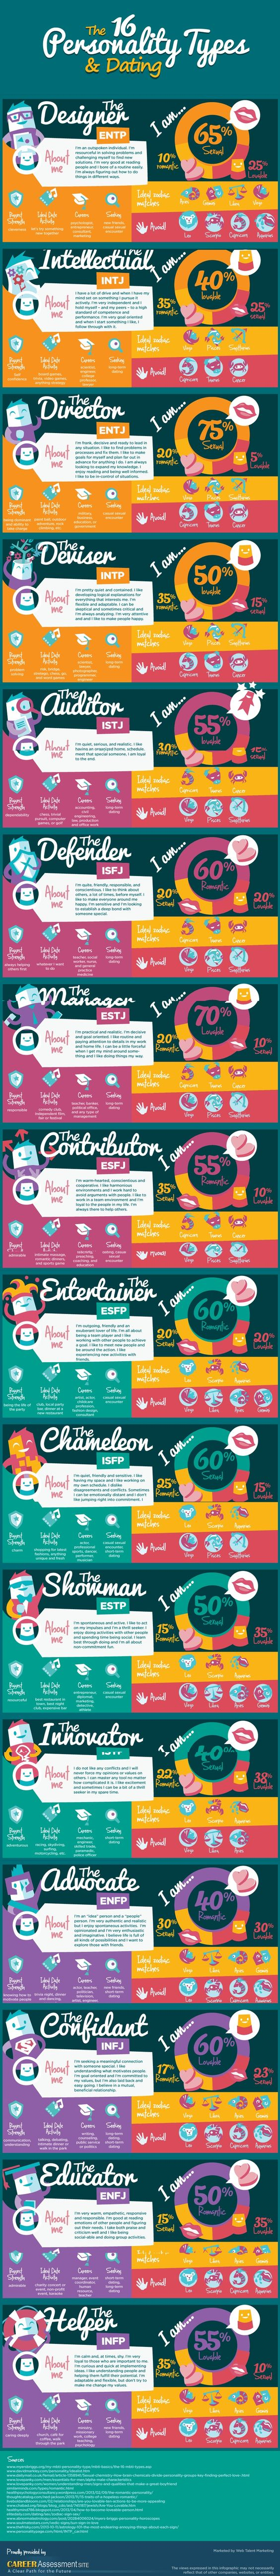 Oh dear...spoiled by the zodiac nonsense! How the 16 MBTI personality types typically experience dating relationships